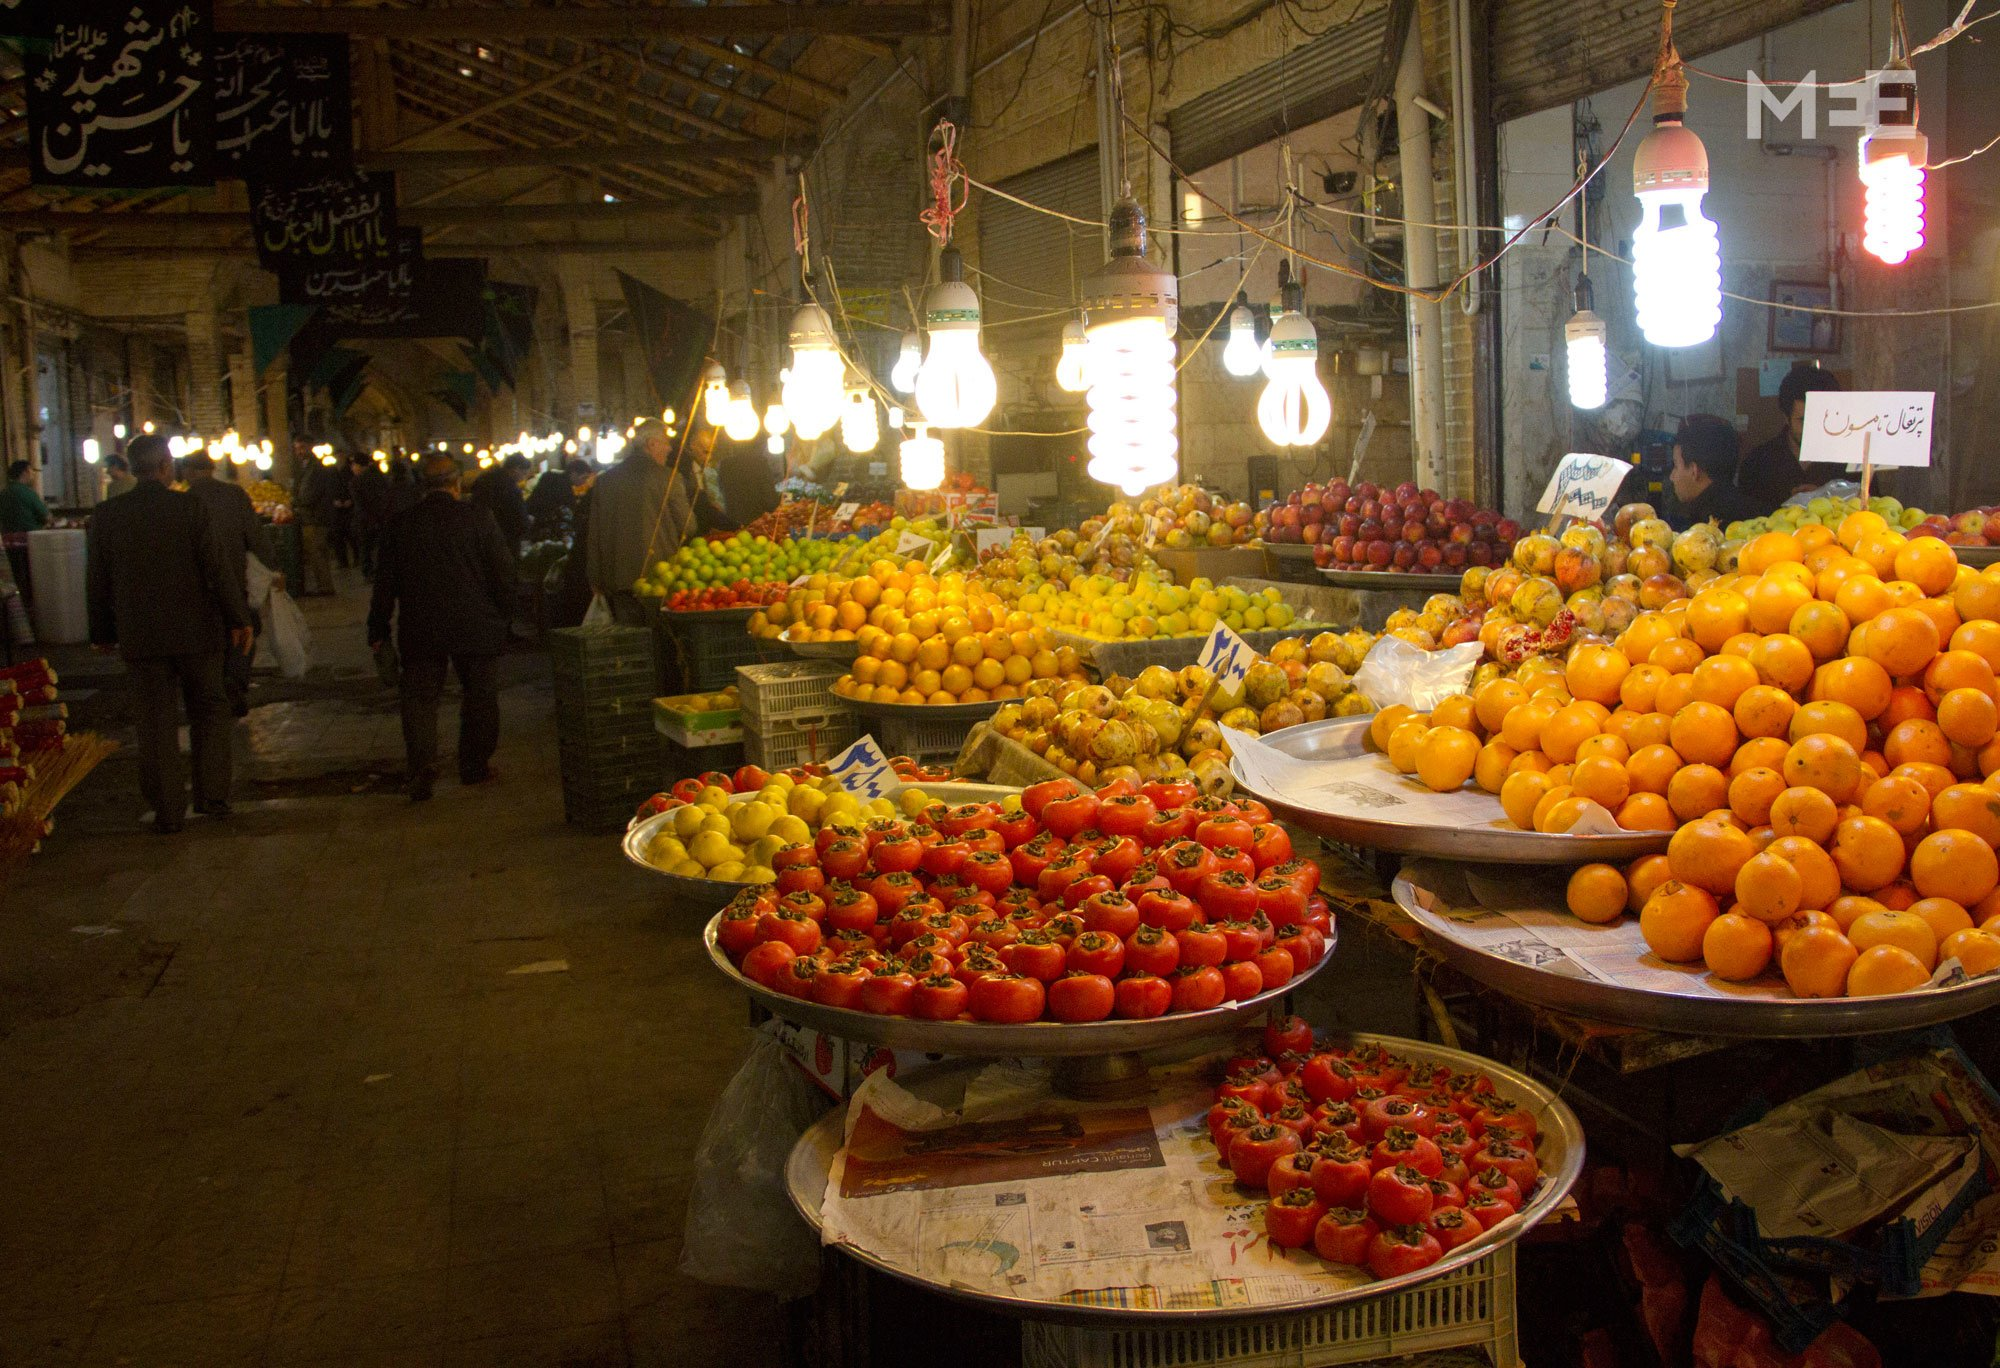 The Persian bazaar still thrives in modern Iran